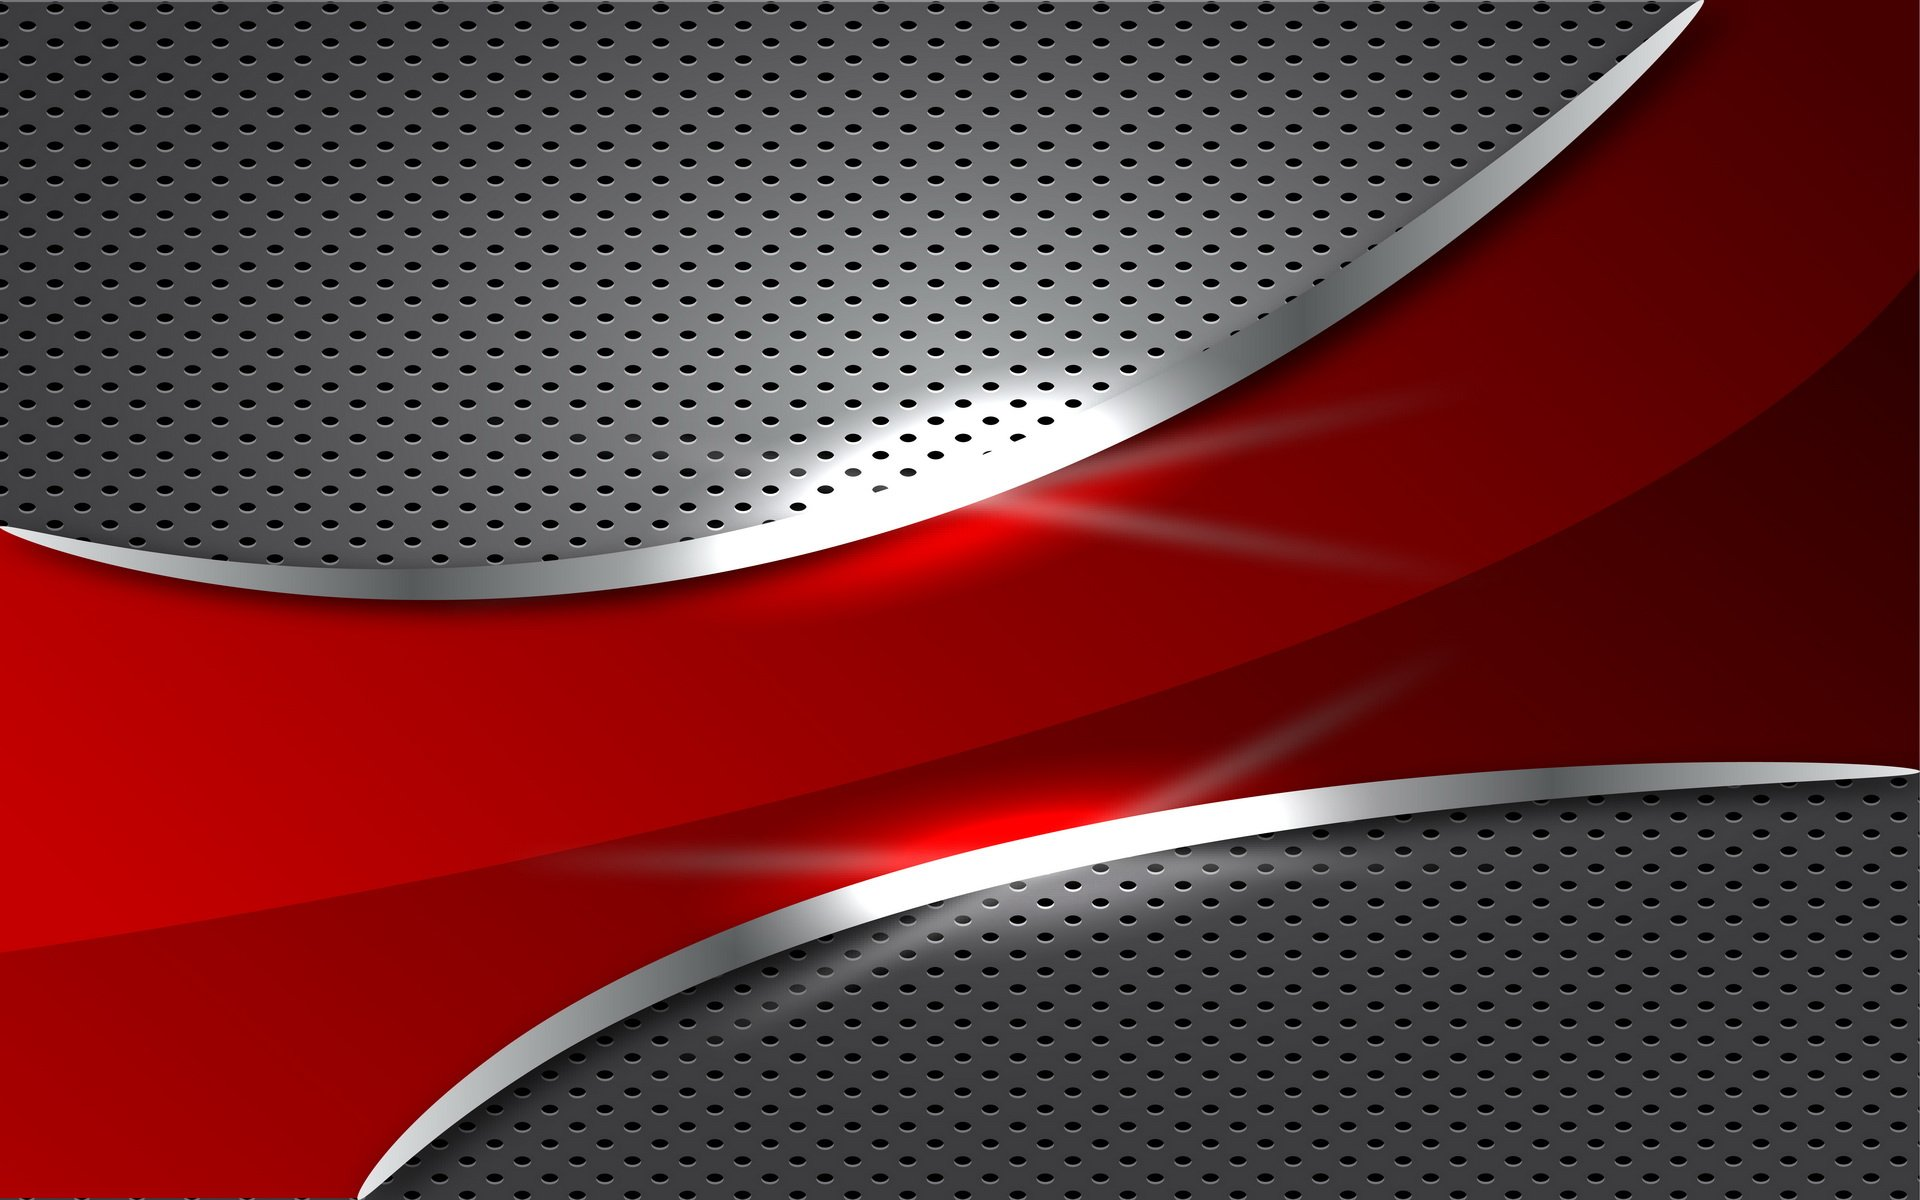 Red Hd Wallpaper Background Image 1920x1200 Id